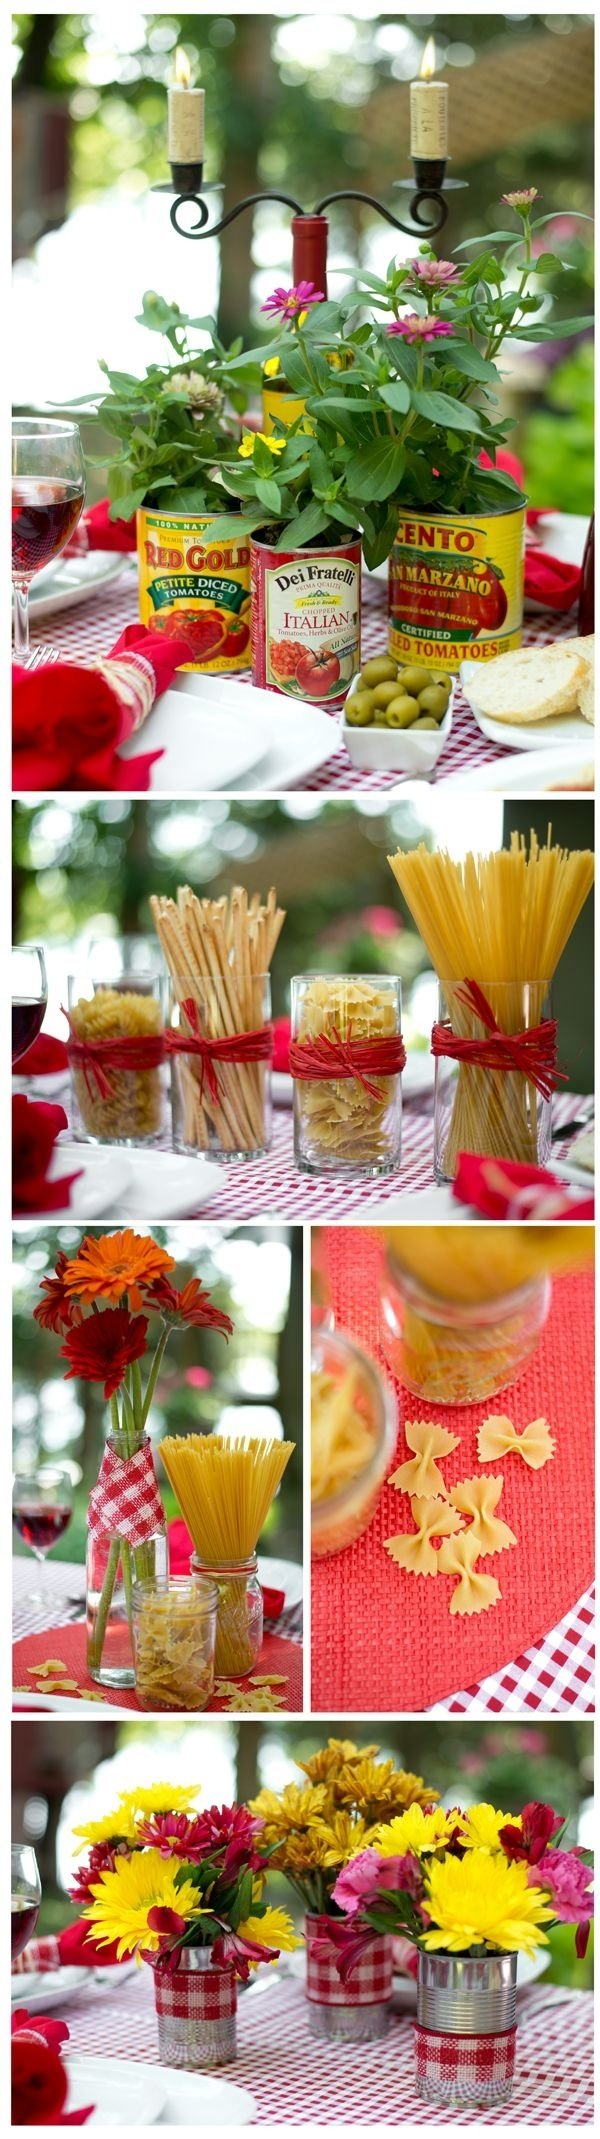 10 Lovely Wedding Rehearsal Dinner Ideas On A Budget budget centerpiece ideas for an italian dinner theme dinner themes 2020